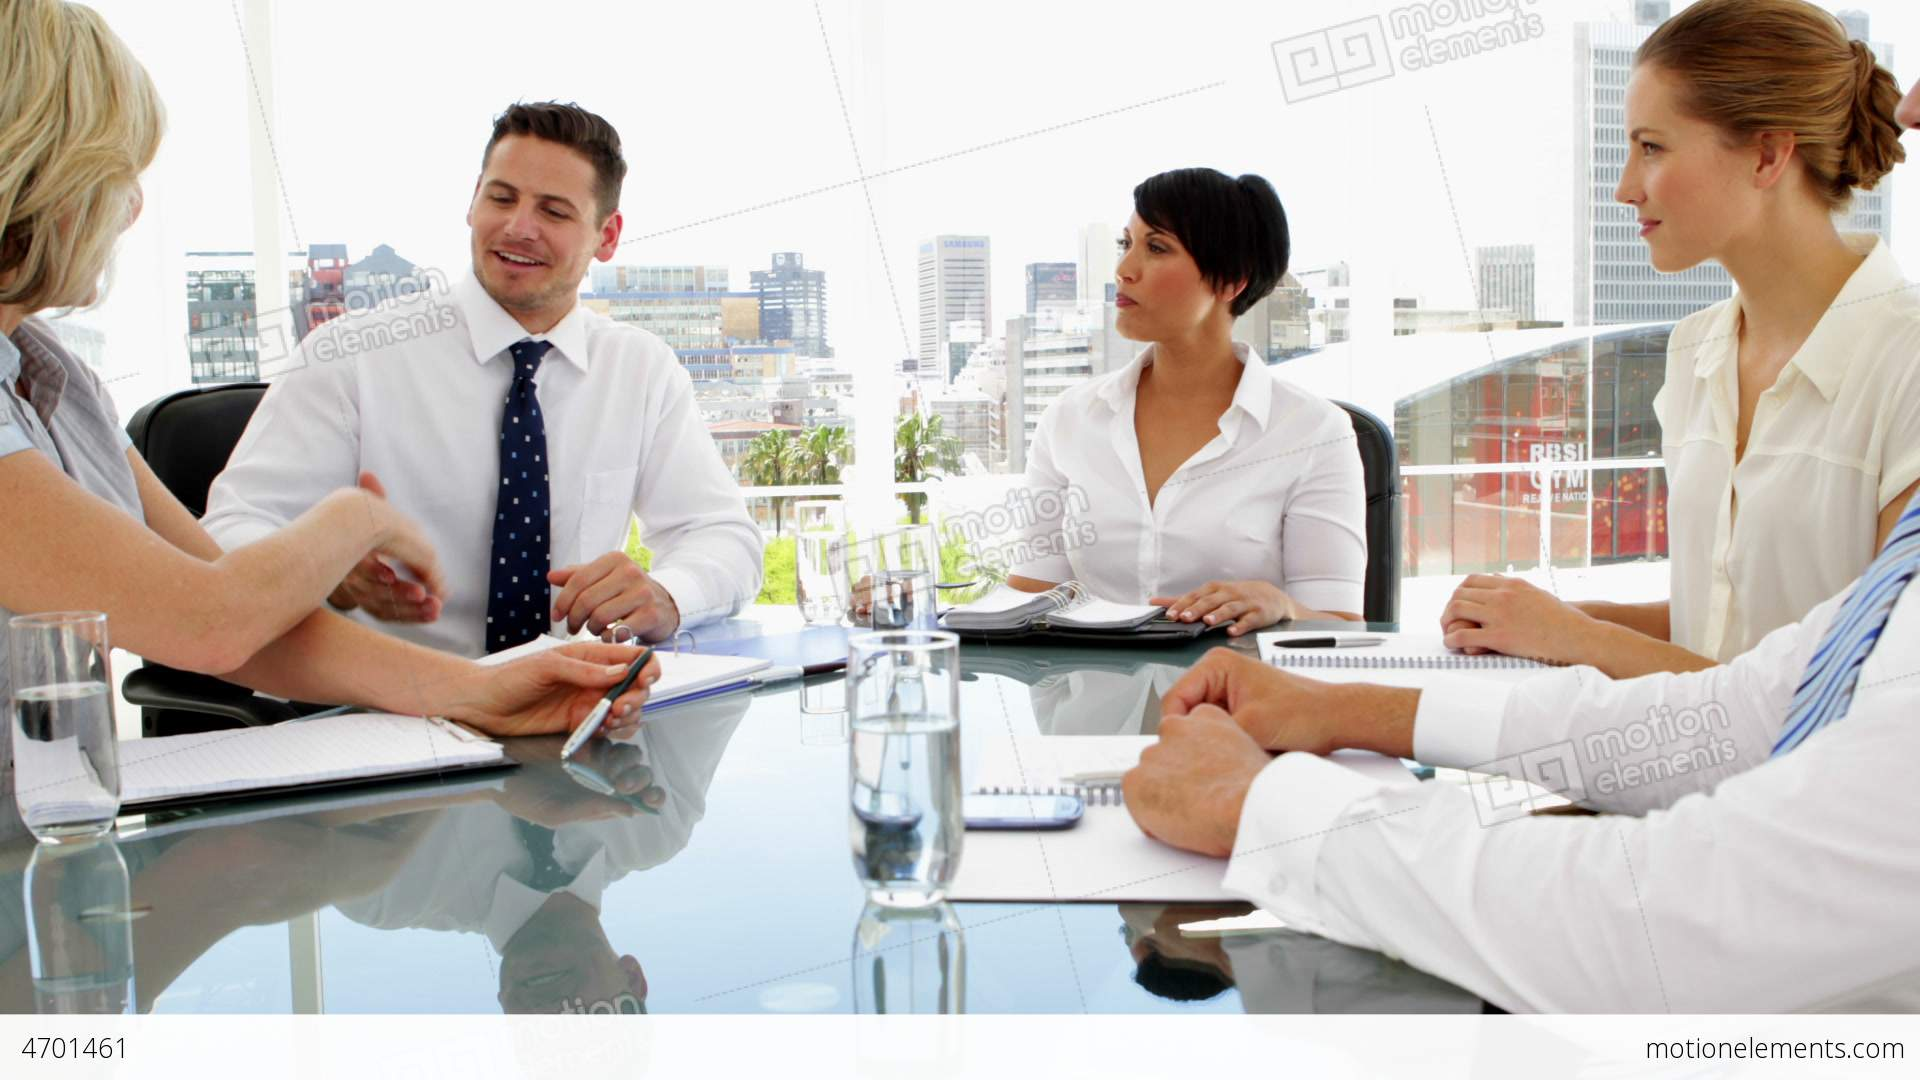 me4701461-happy-business-people-shaking-hands-during-meeting-south-africa-hd-a0103.jpg